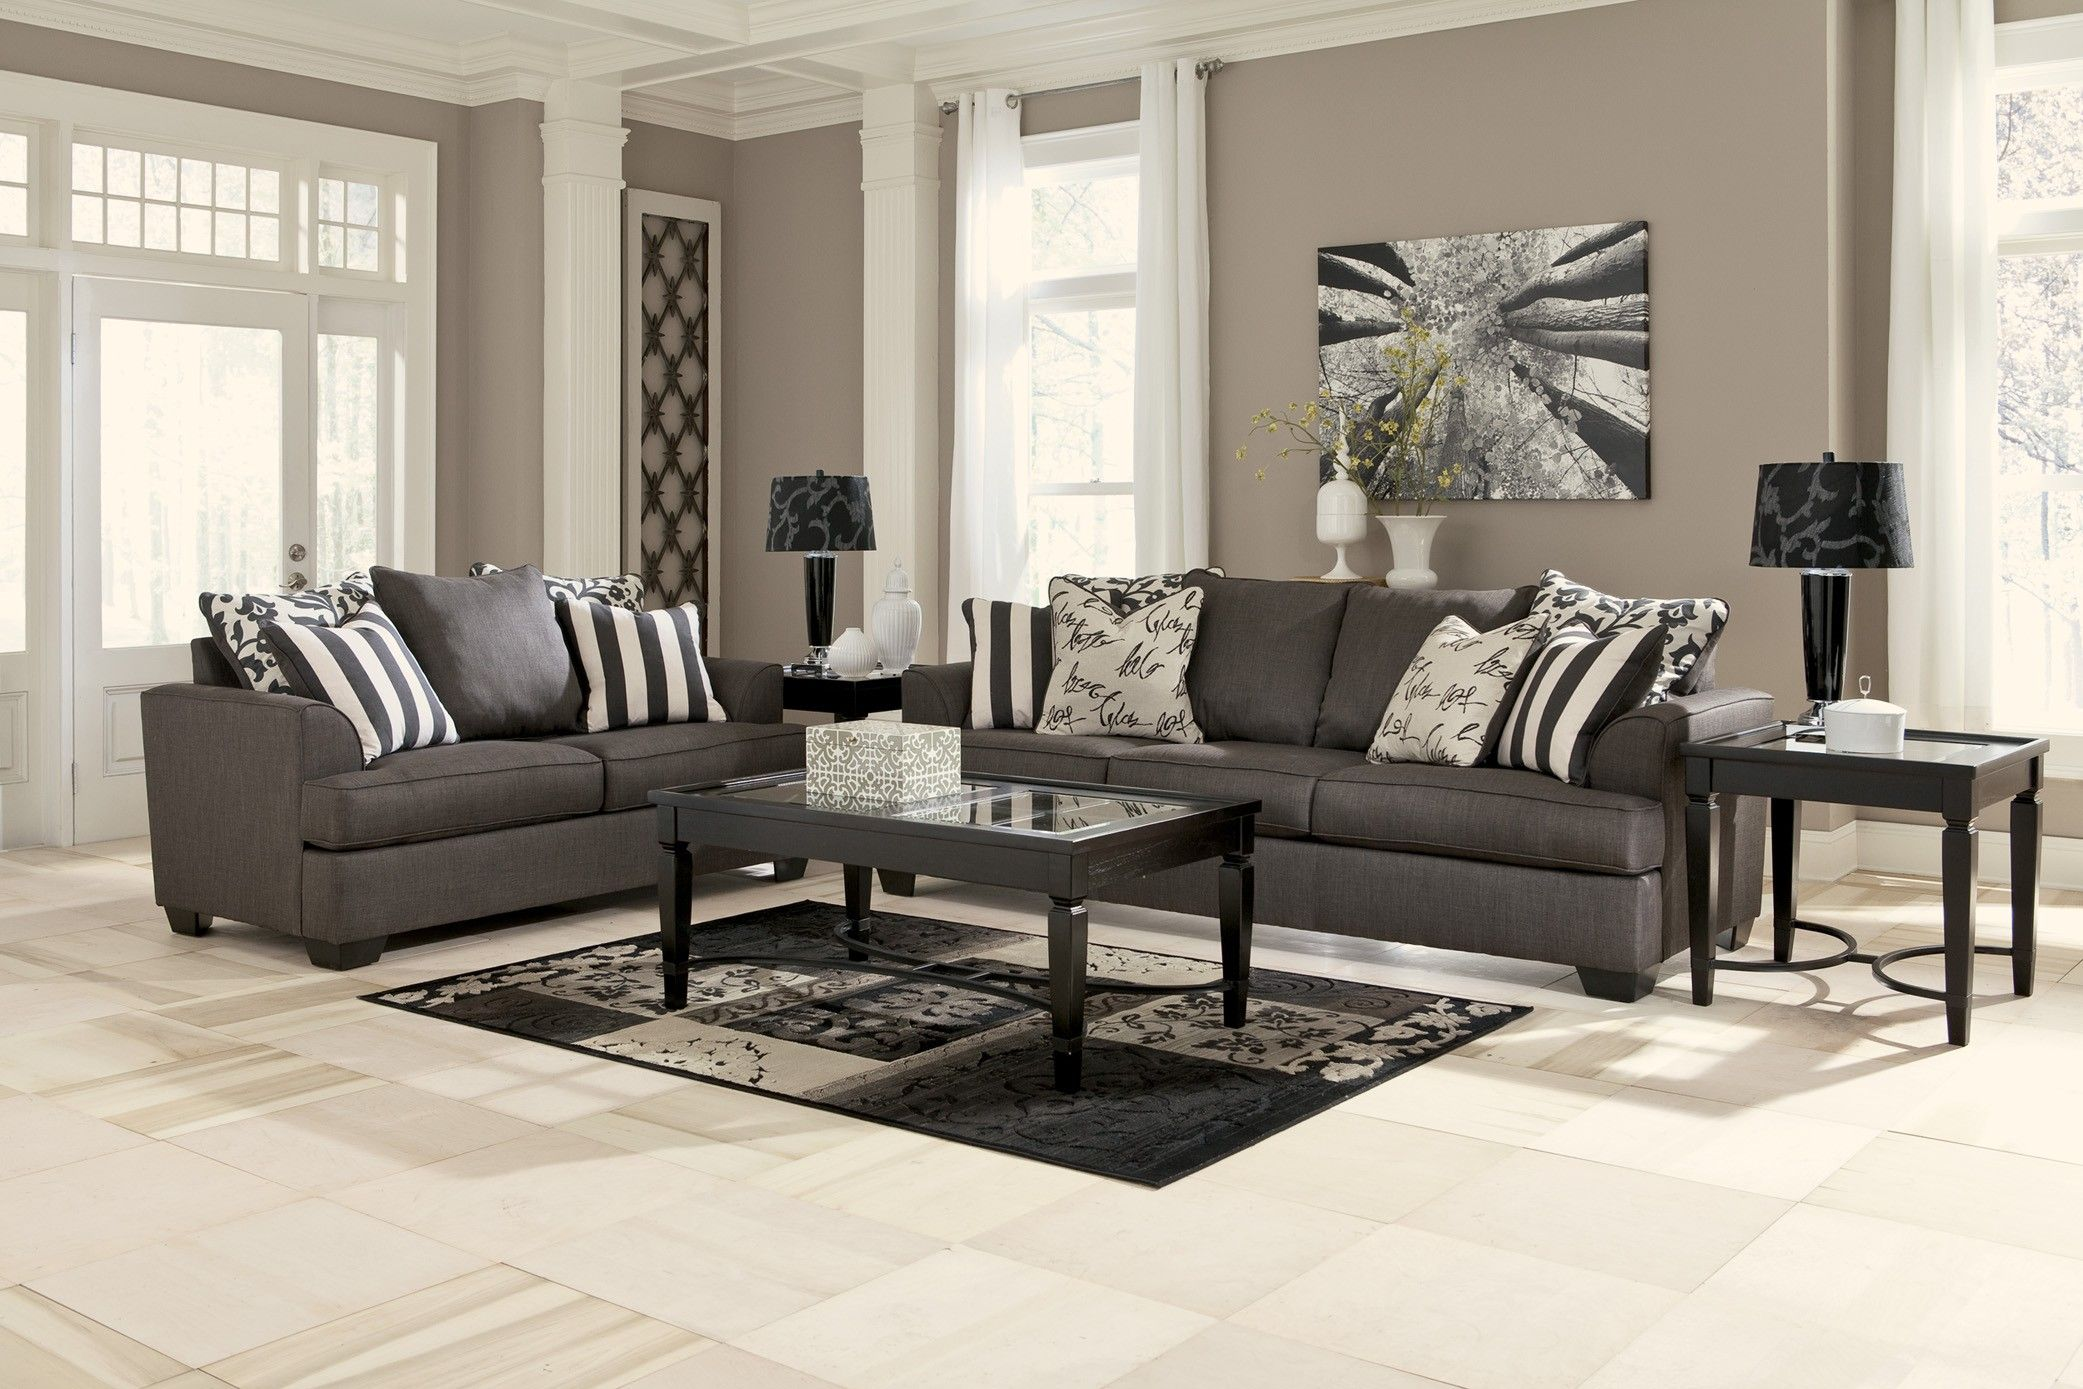 Furniture, Creative Concept For Modern Living Room Grey Decors With Modern Charcoal  Sofa And Corner Idea